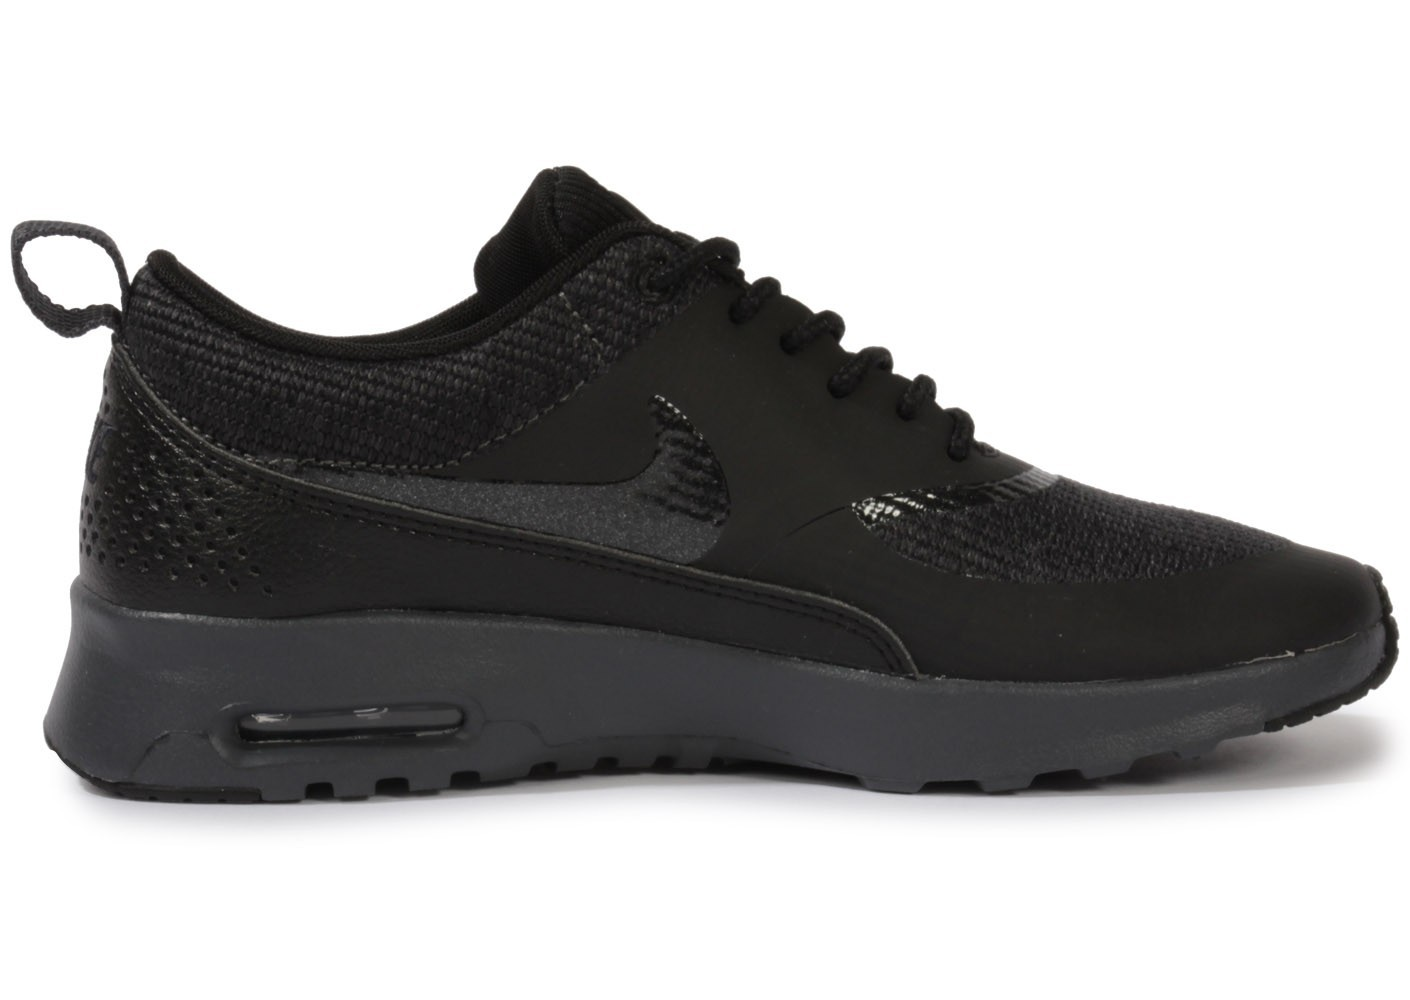 air max yeezy pas cher,Nike Air Max 90 Yeezy 2 (Design by